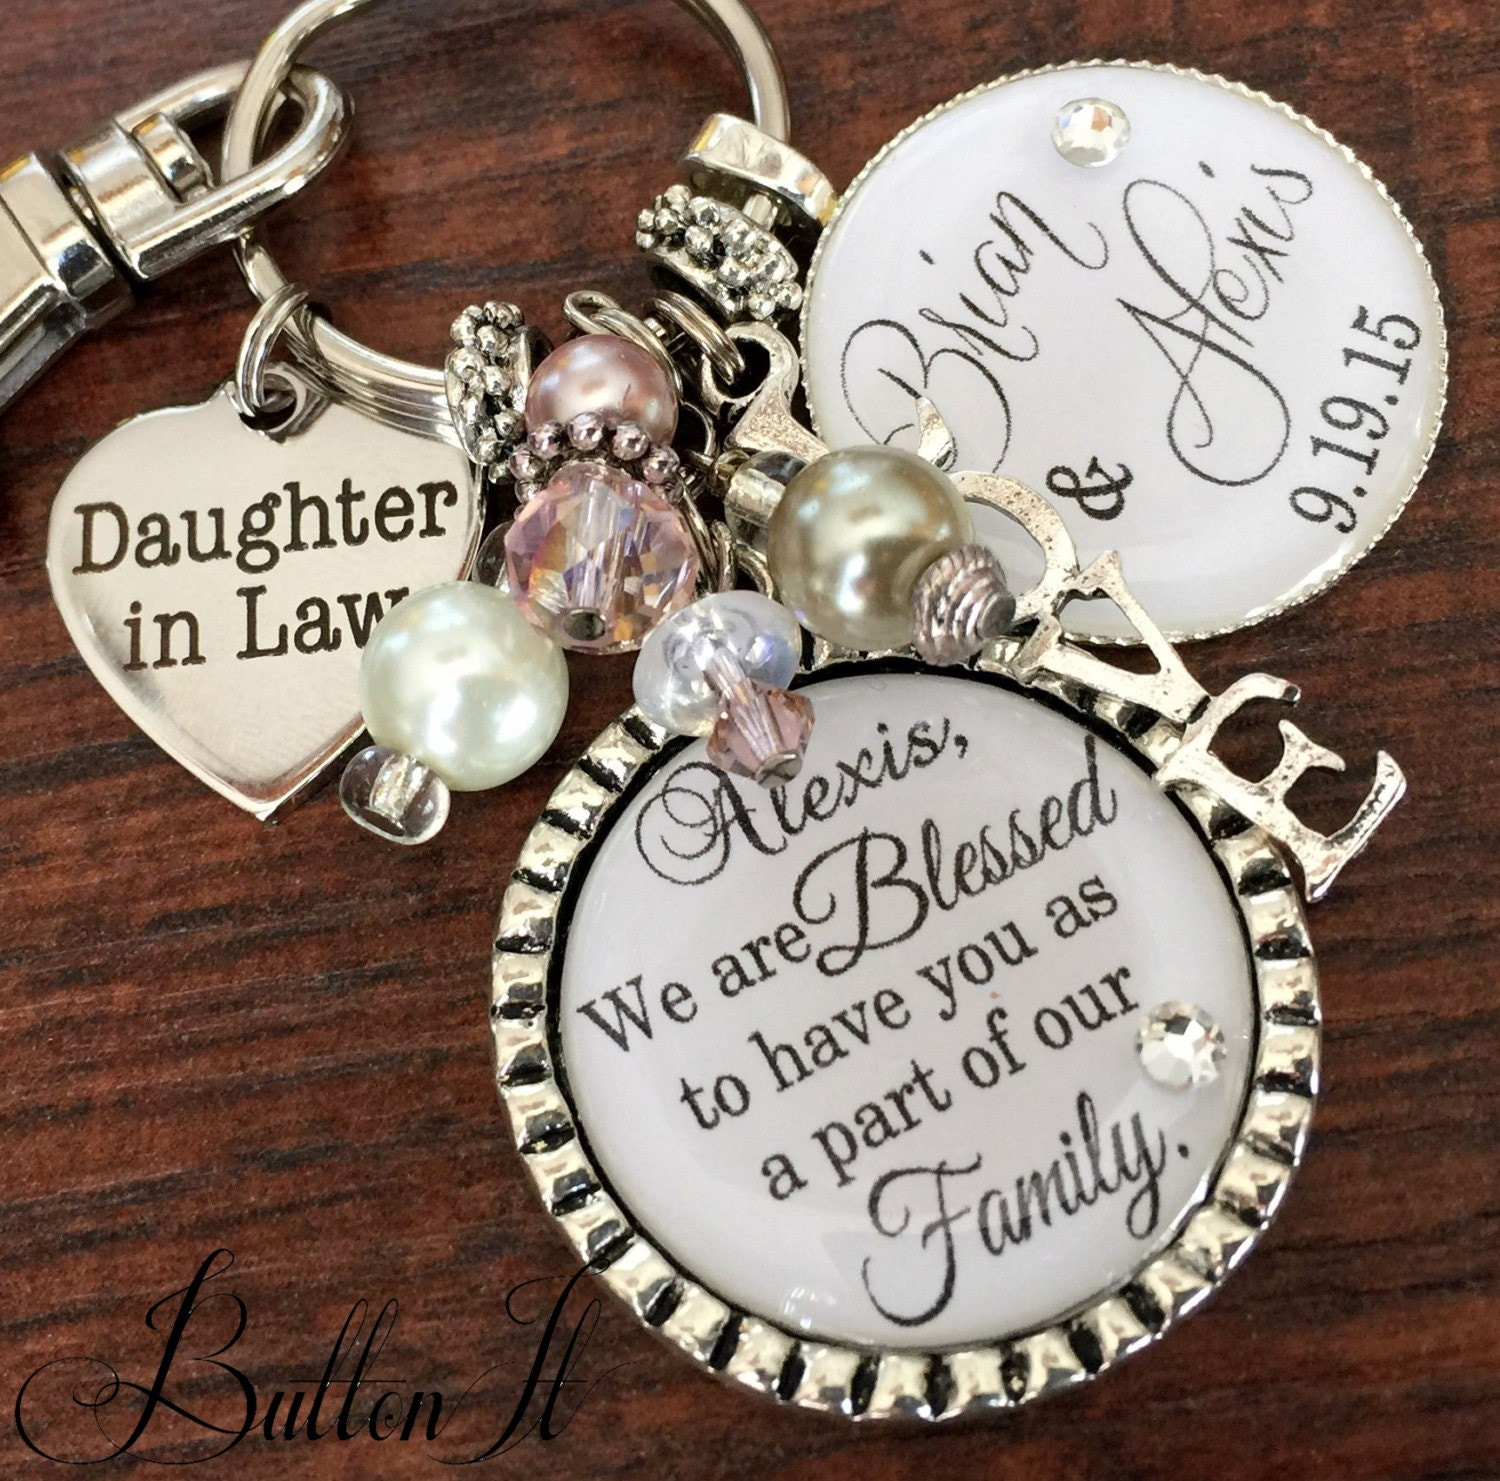 Gifts For Inlaws At Wedding: Daughter In Law Gift Bridal Bouquet Charm PERSONALIZED